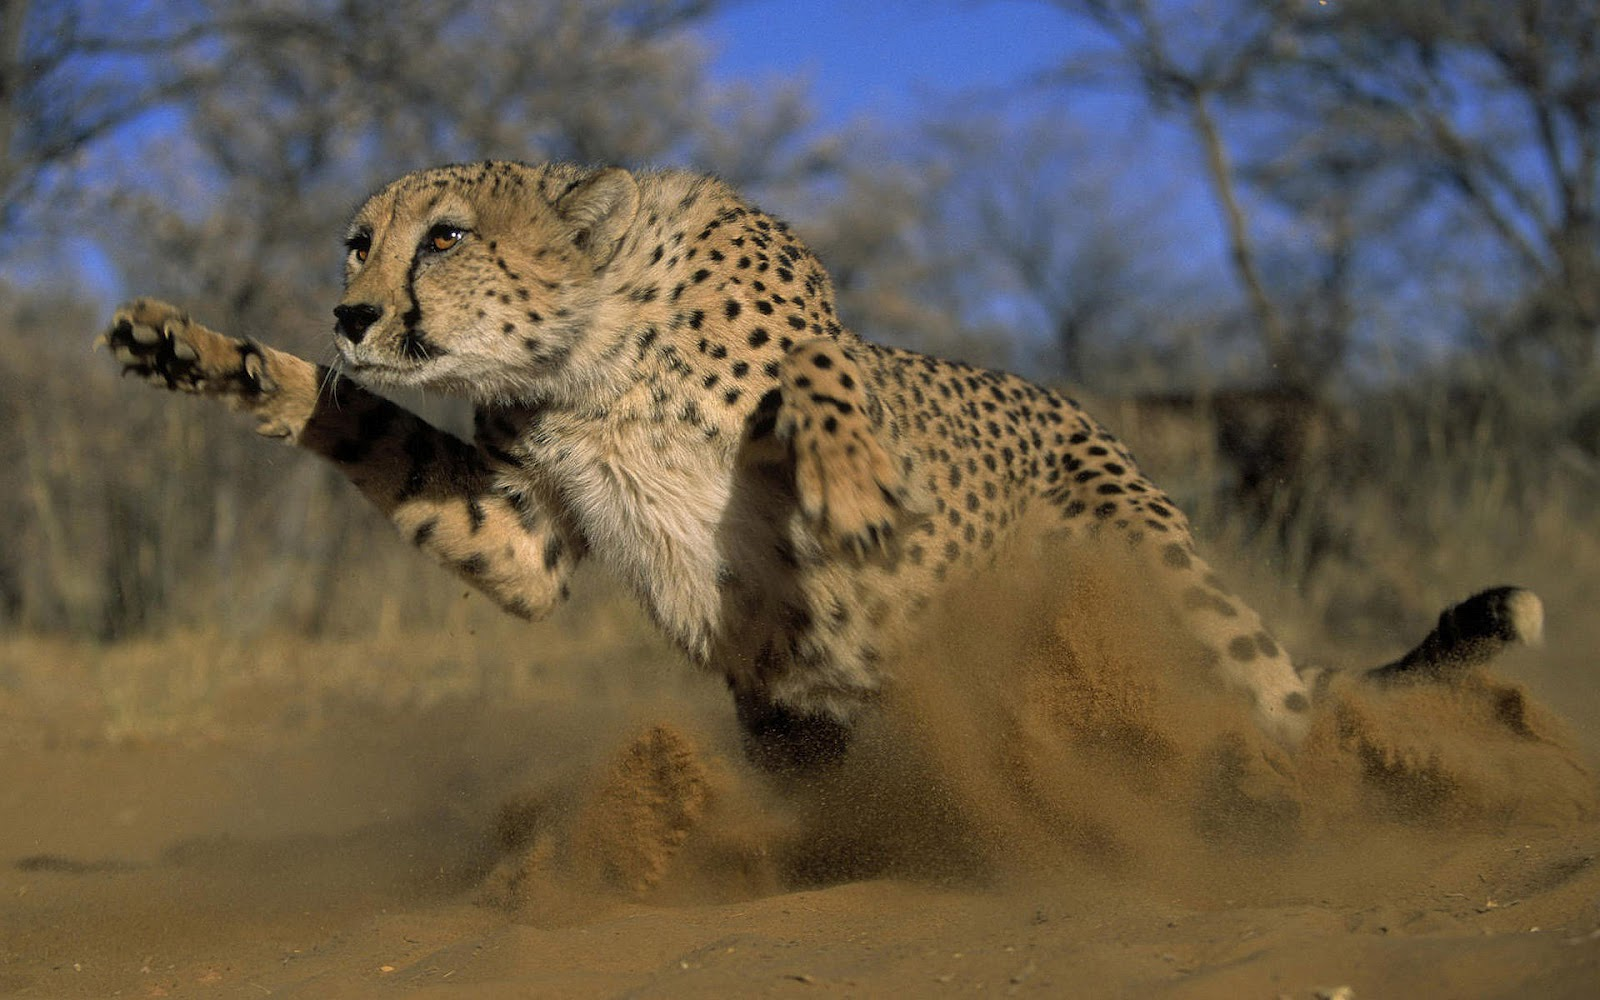 http://3.bp.blogspot.com/-FtRh_WLYORA/UCe-PFTgY8I/AAAAAAAAAZ8/HL6u7z71Hvo/s1600/hd-cheetah-wallpaper-with-a-attacking-cheetah-hd-cheetah-wallpapers-backgrounds.jpg